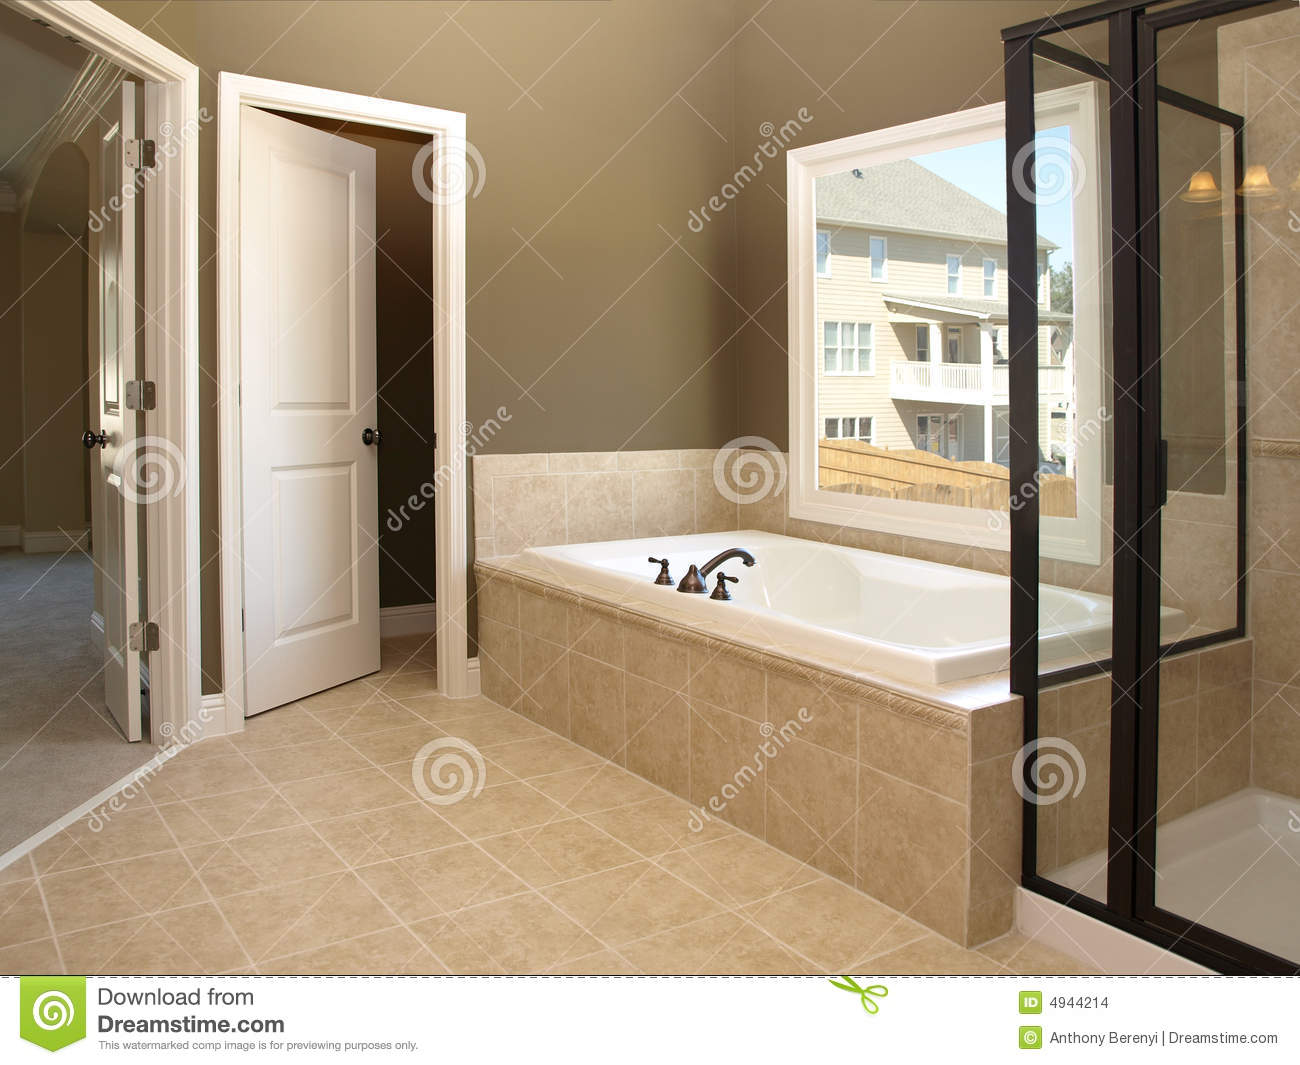 Luxury Bathroom Tub And Window 2 Stock Photo  Image of